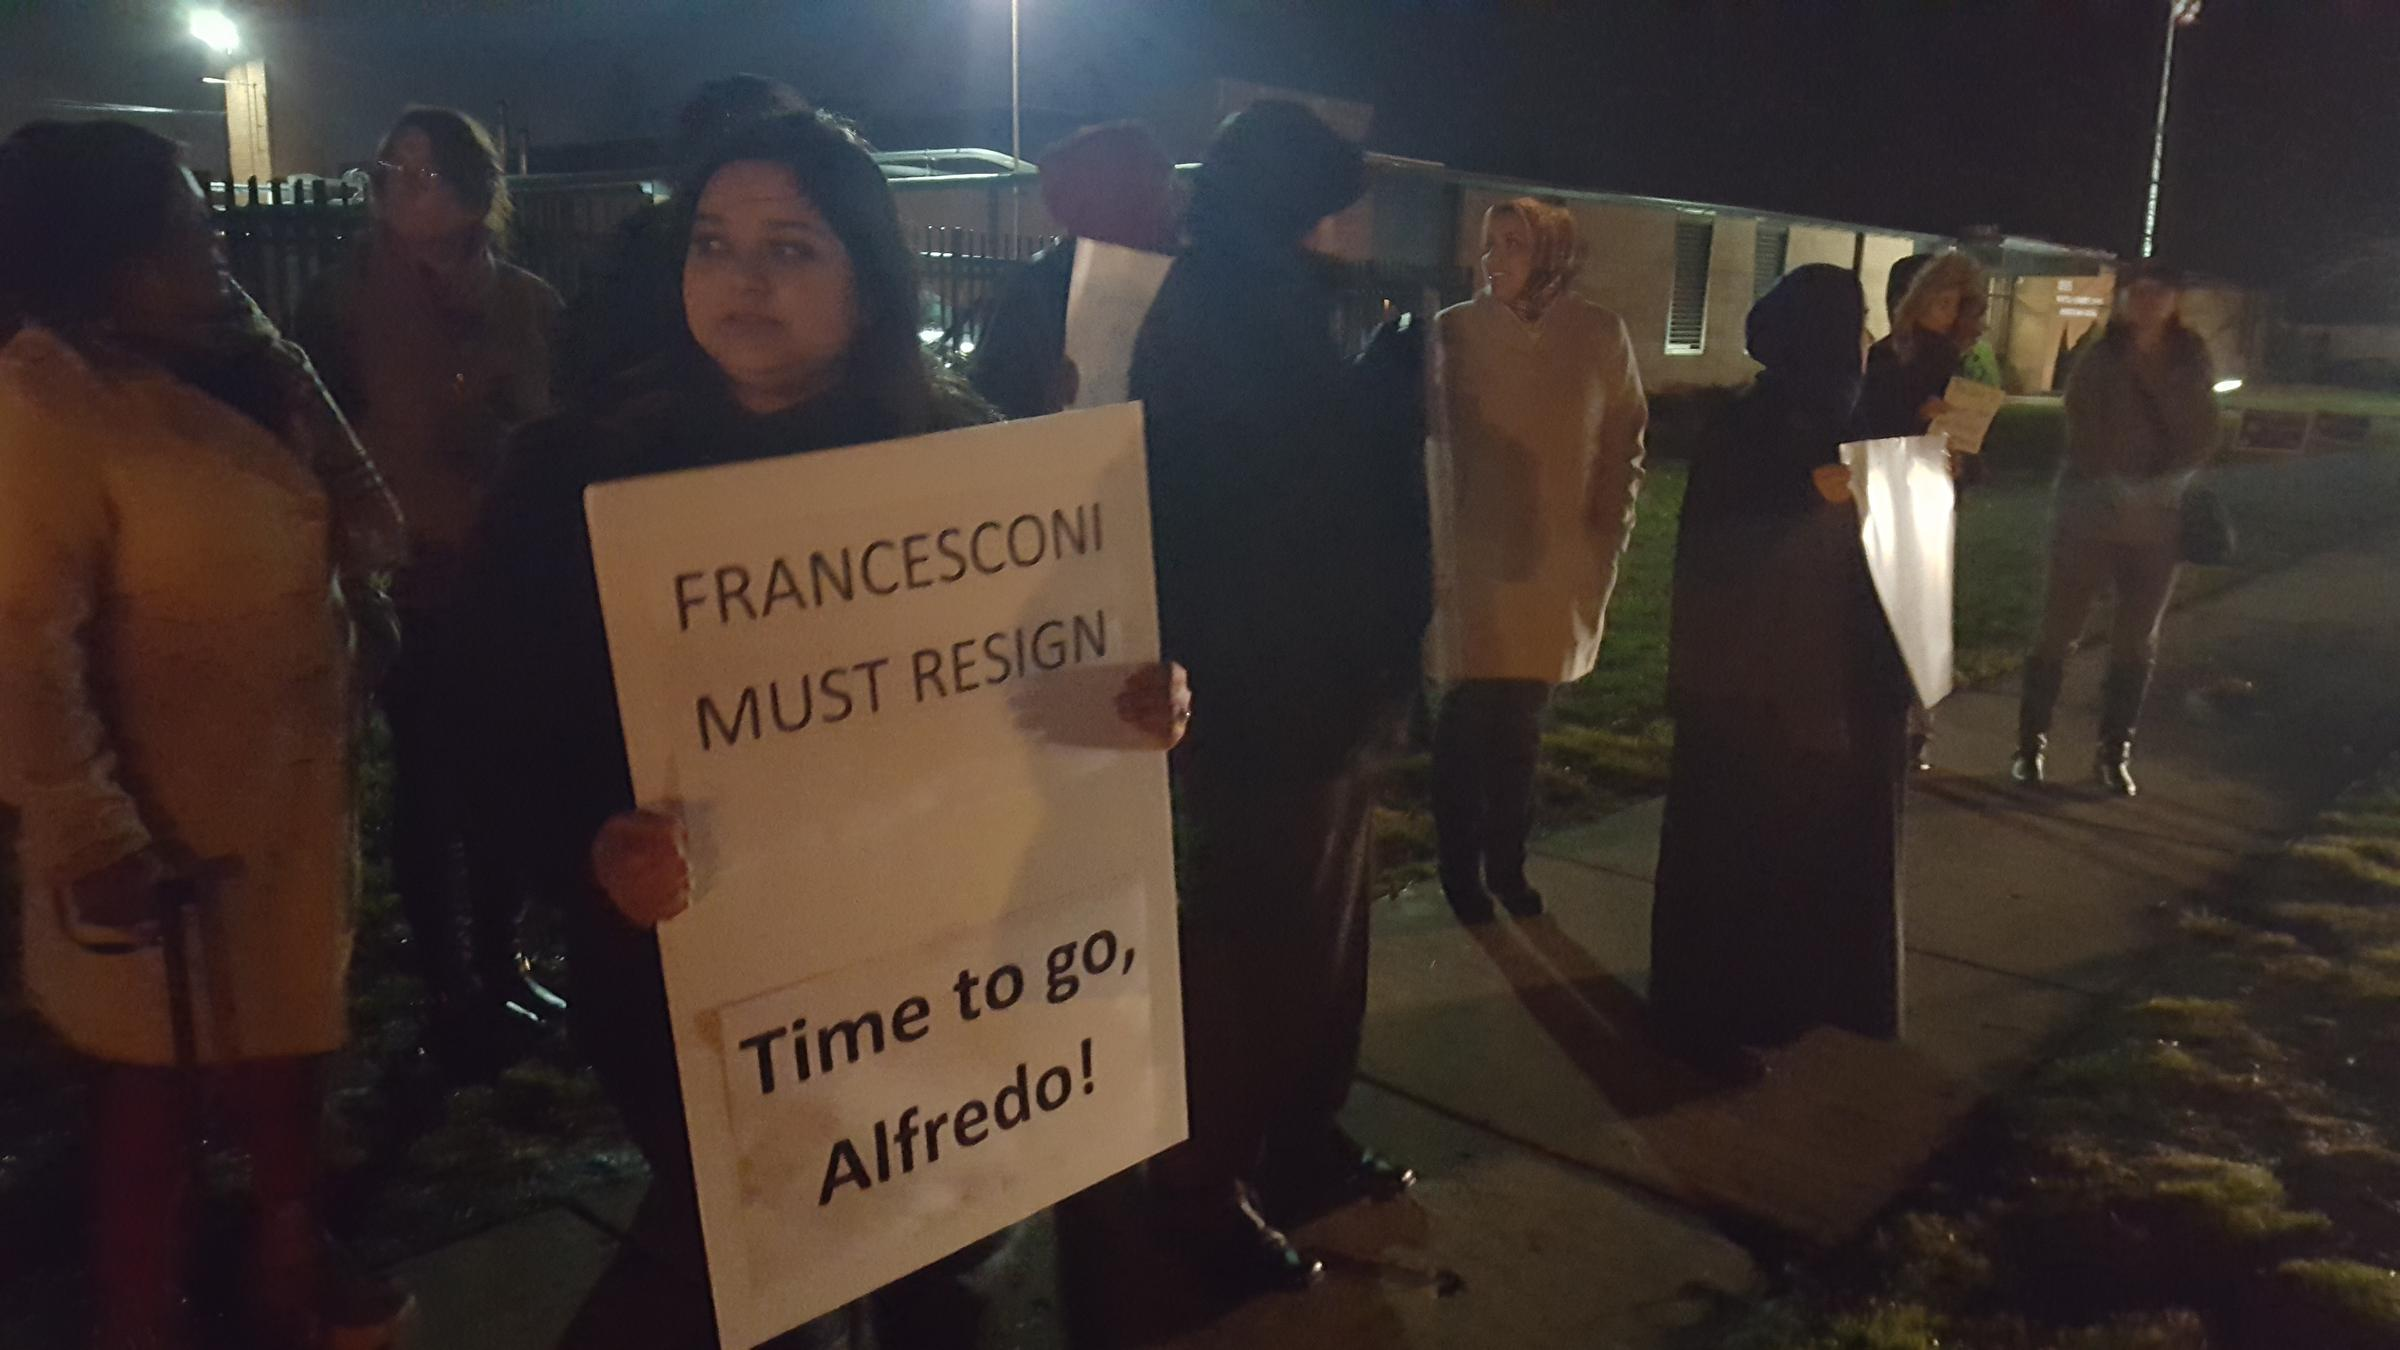 Protestors stand outside Roseville Community Schools building urging the  removal of Vice President Alfredo Francesconi